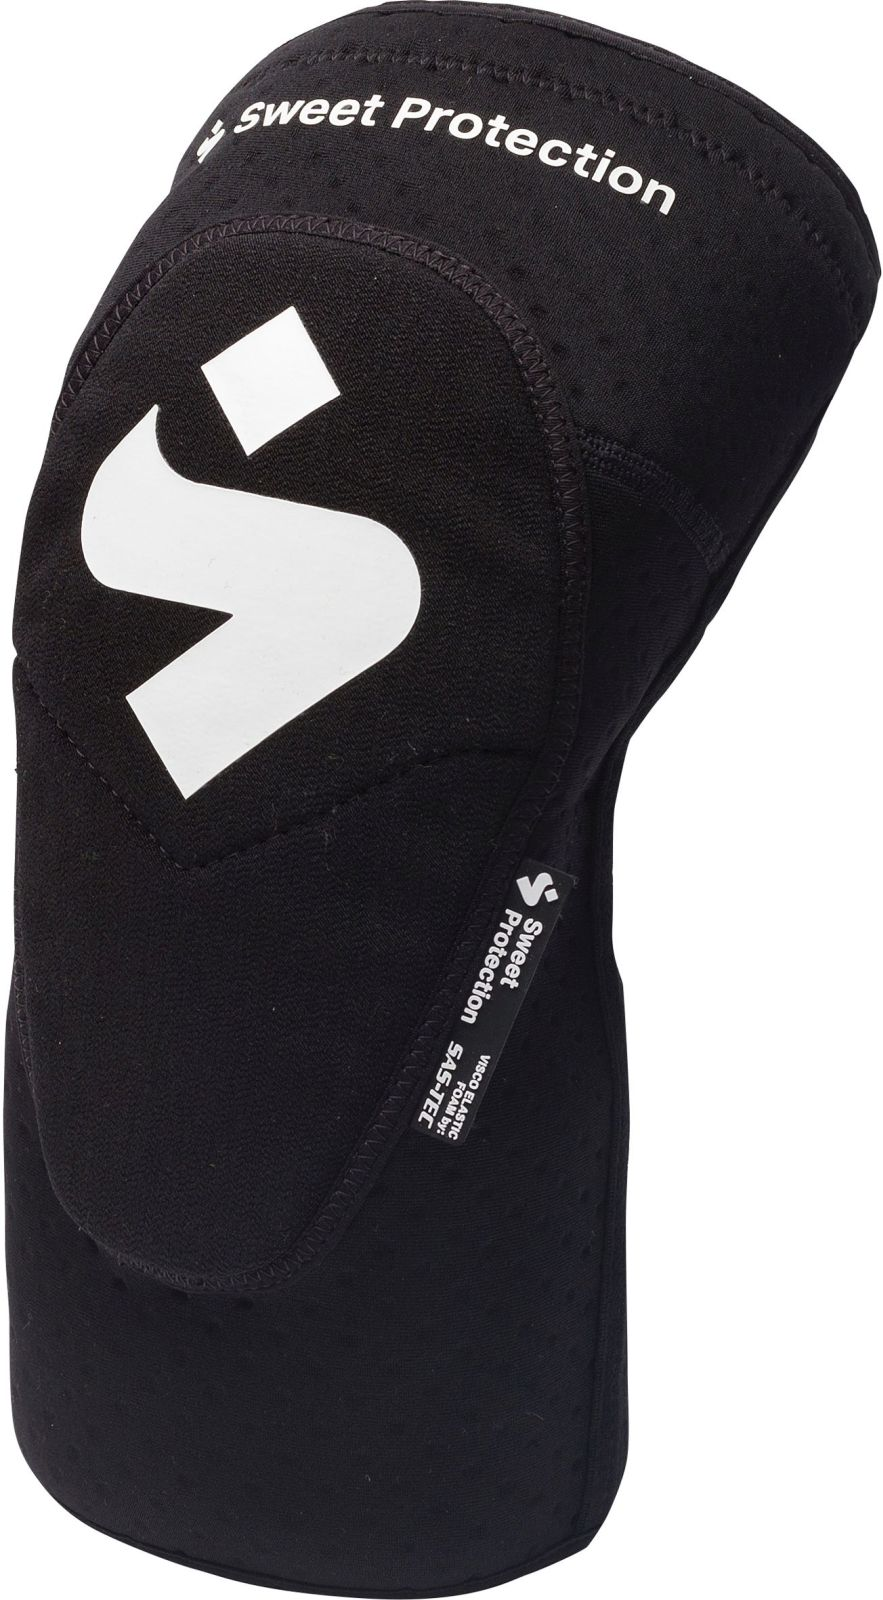 Sweet Protection Knee Guards - black M